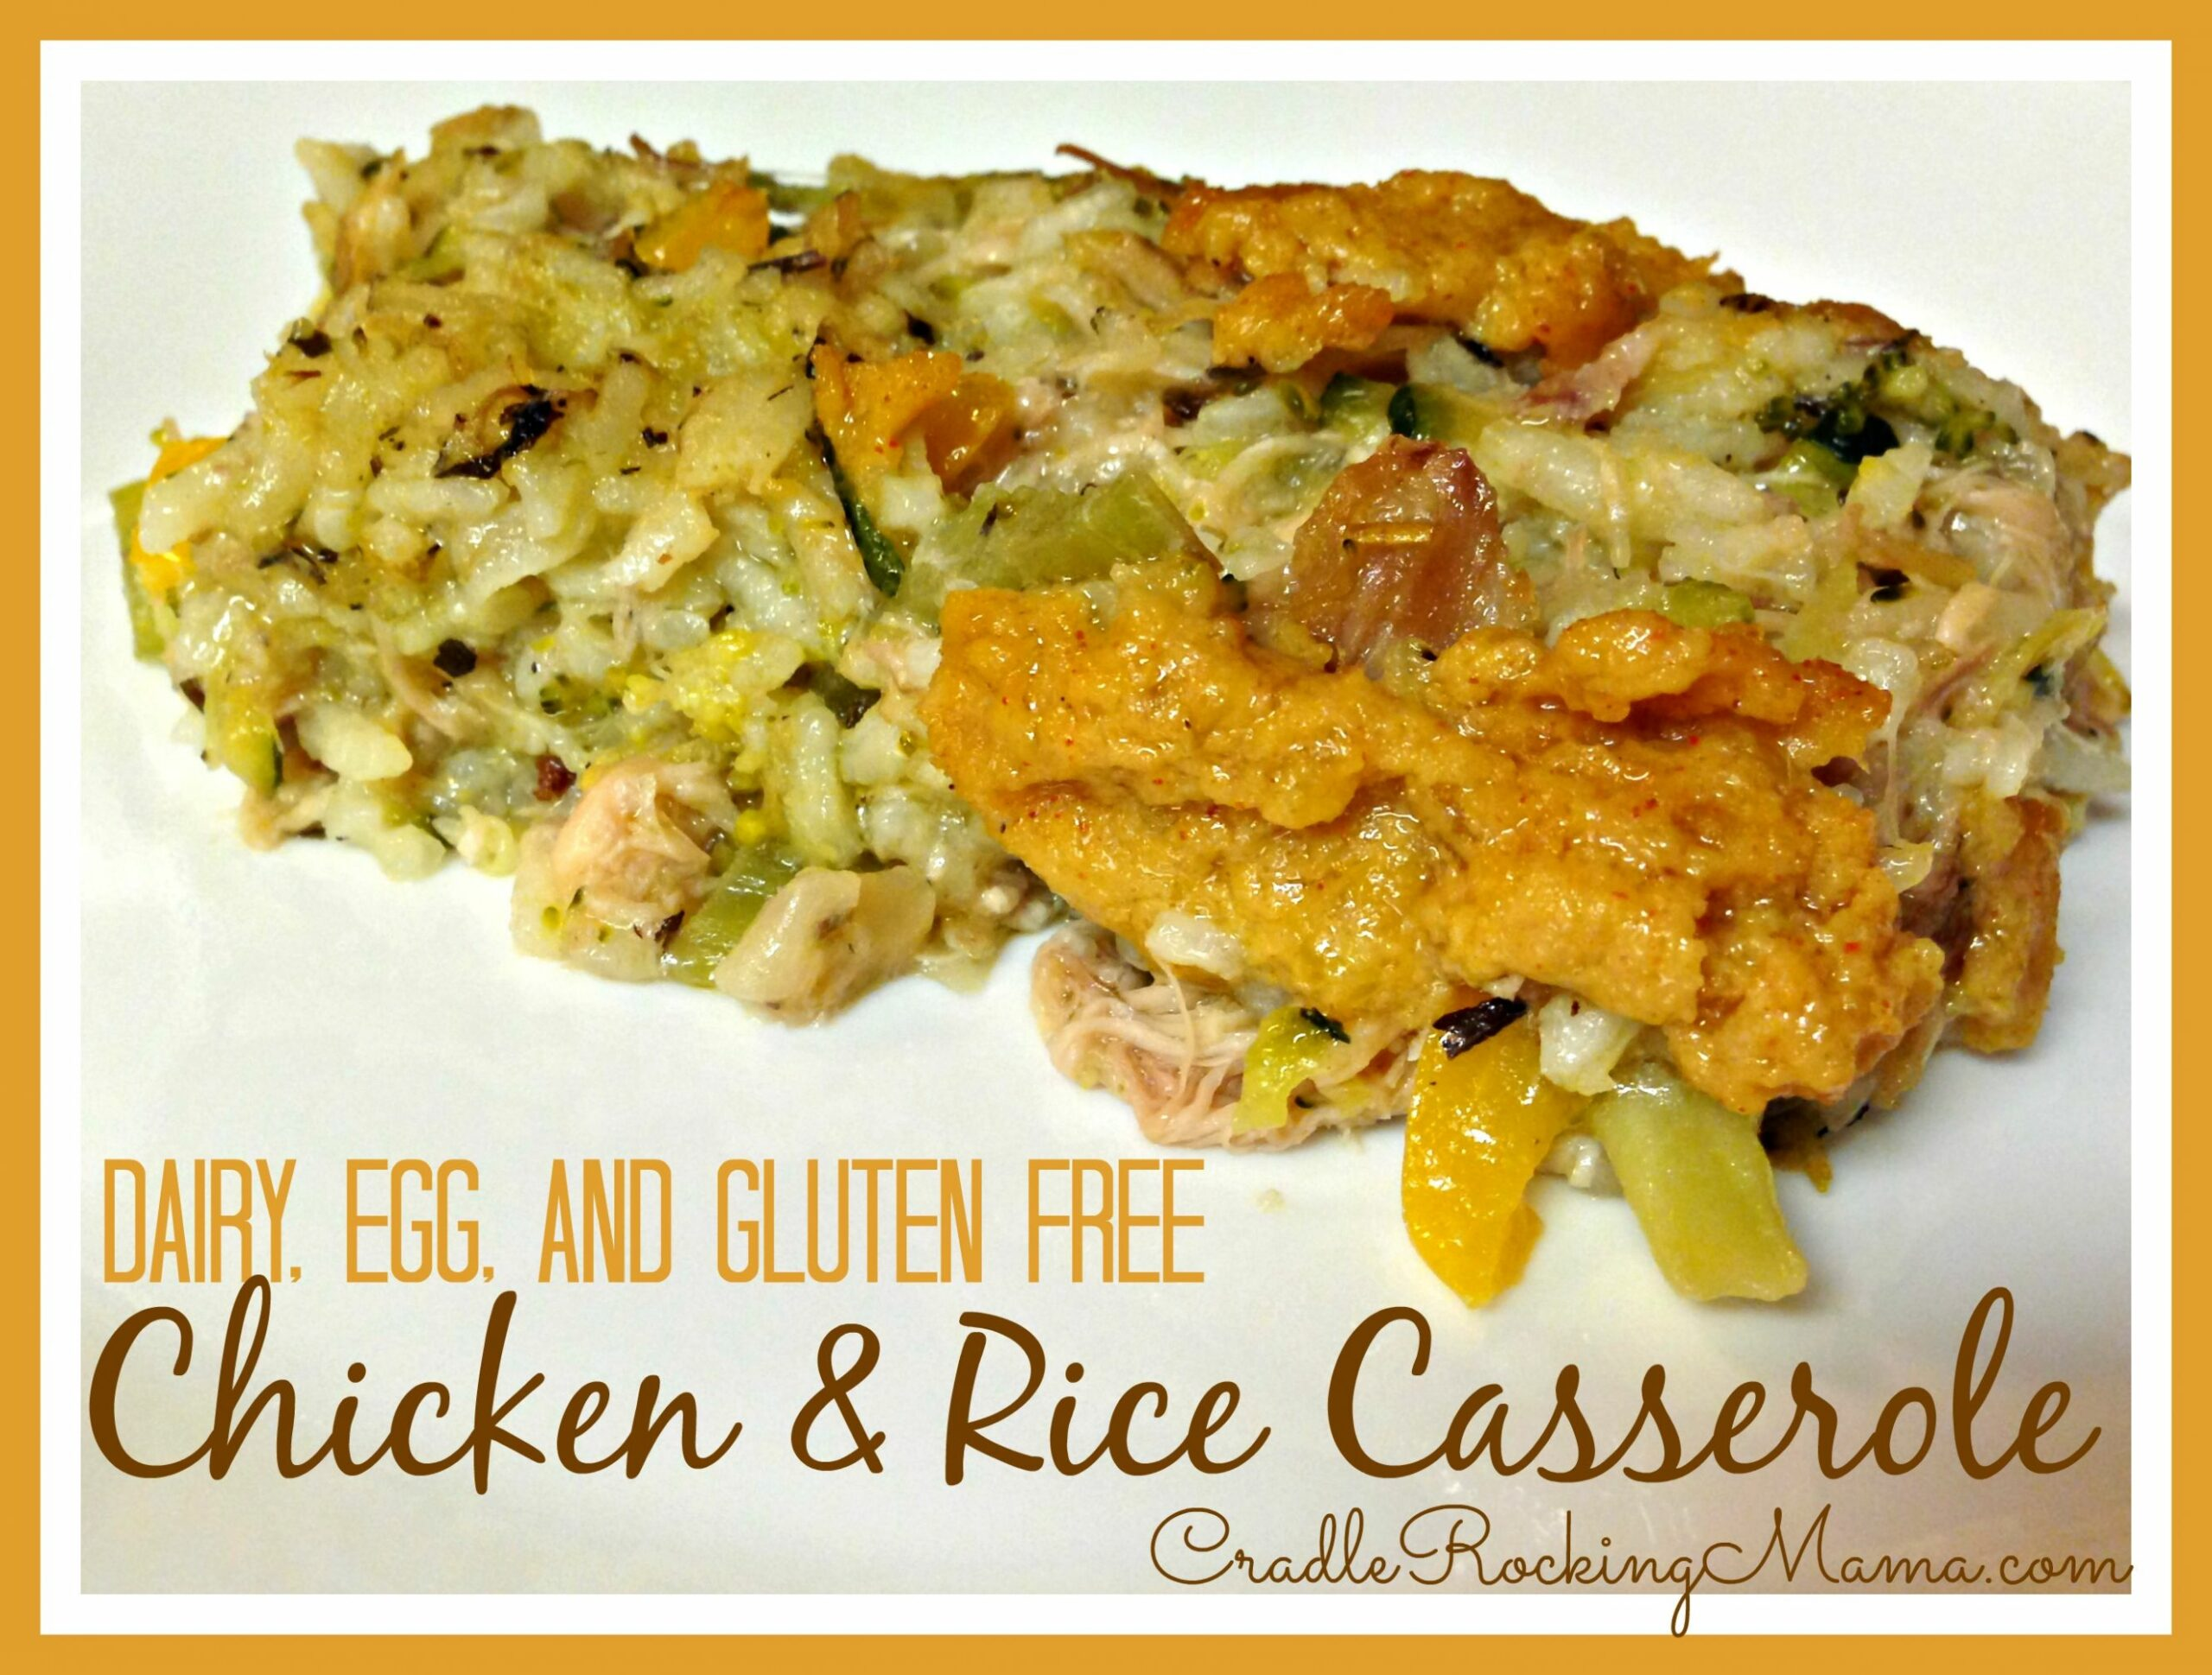 Dairy, Egg & Gluten Free Chicken & Rice Casserole - Rice Recipes Gluten Free